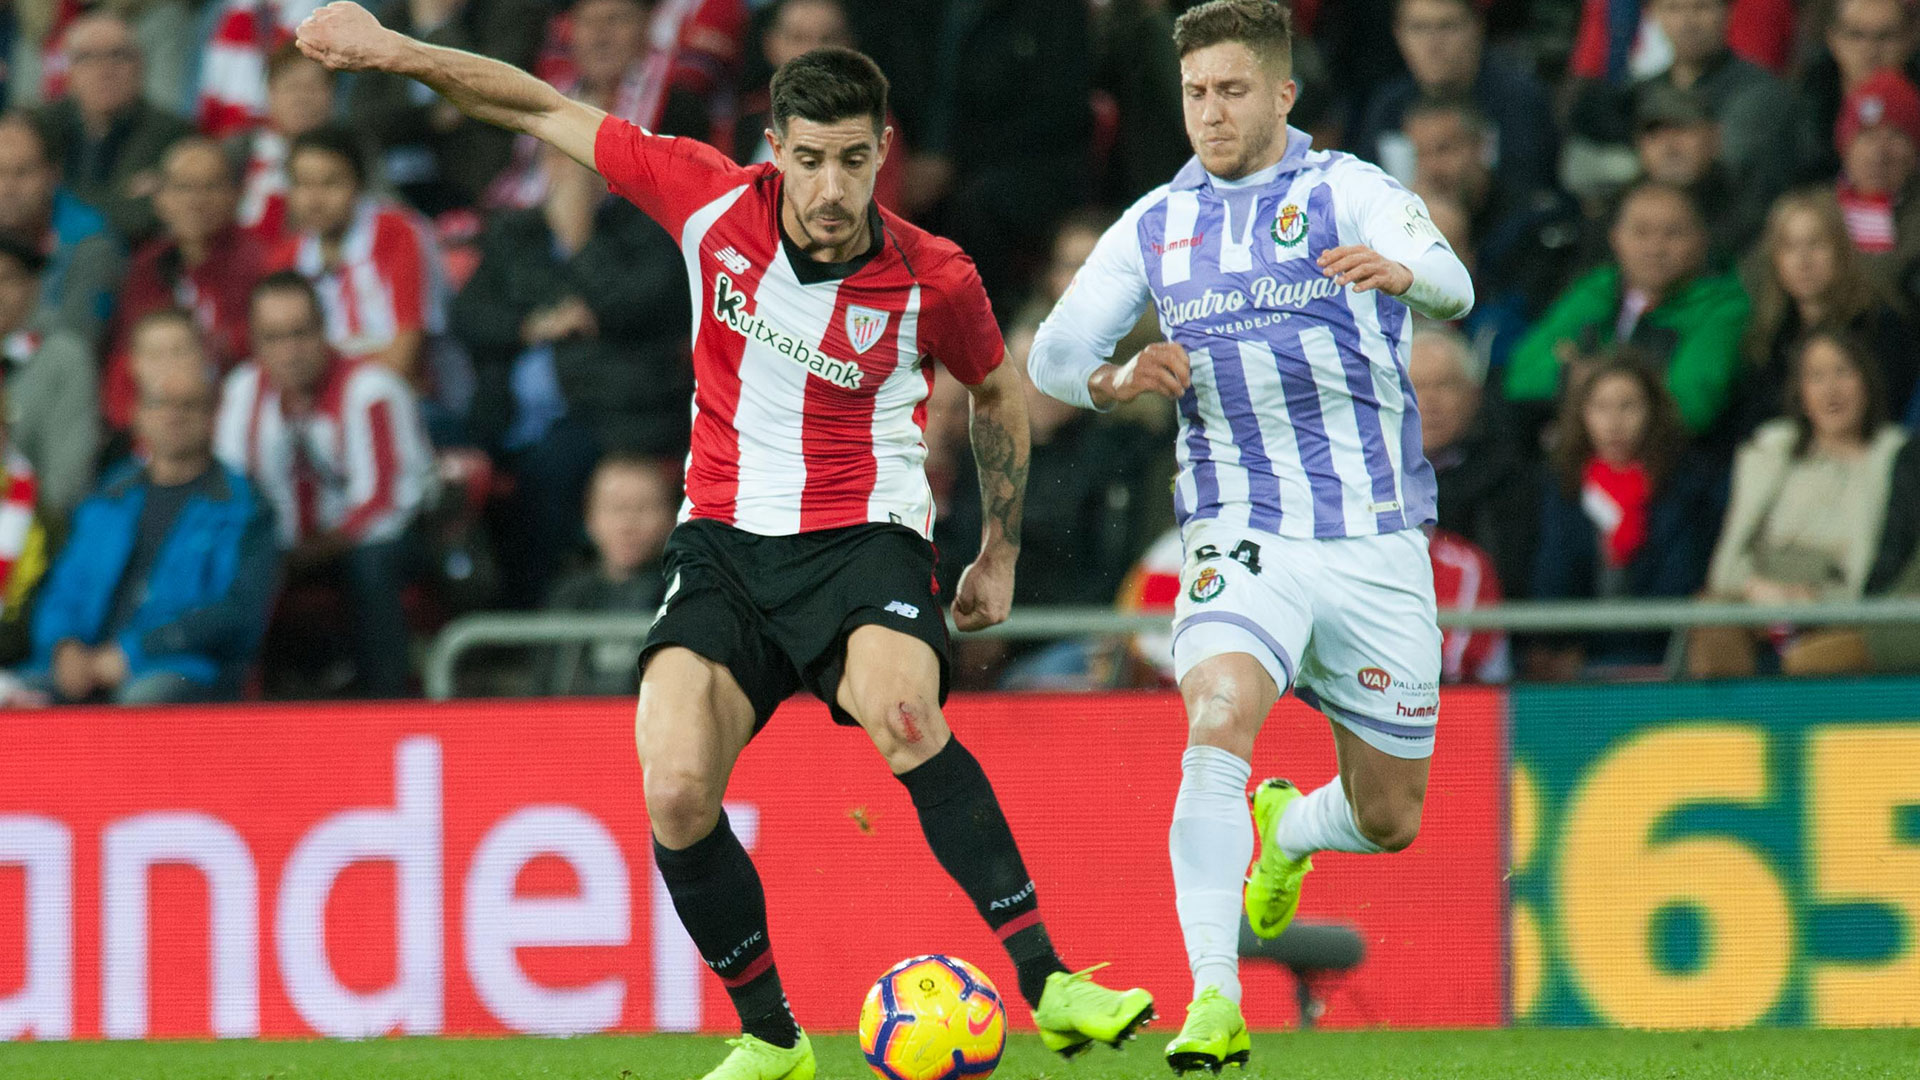 Real Valladolid – Athletic Club partidarako sarrerak